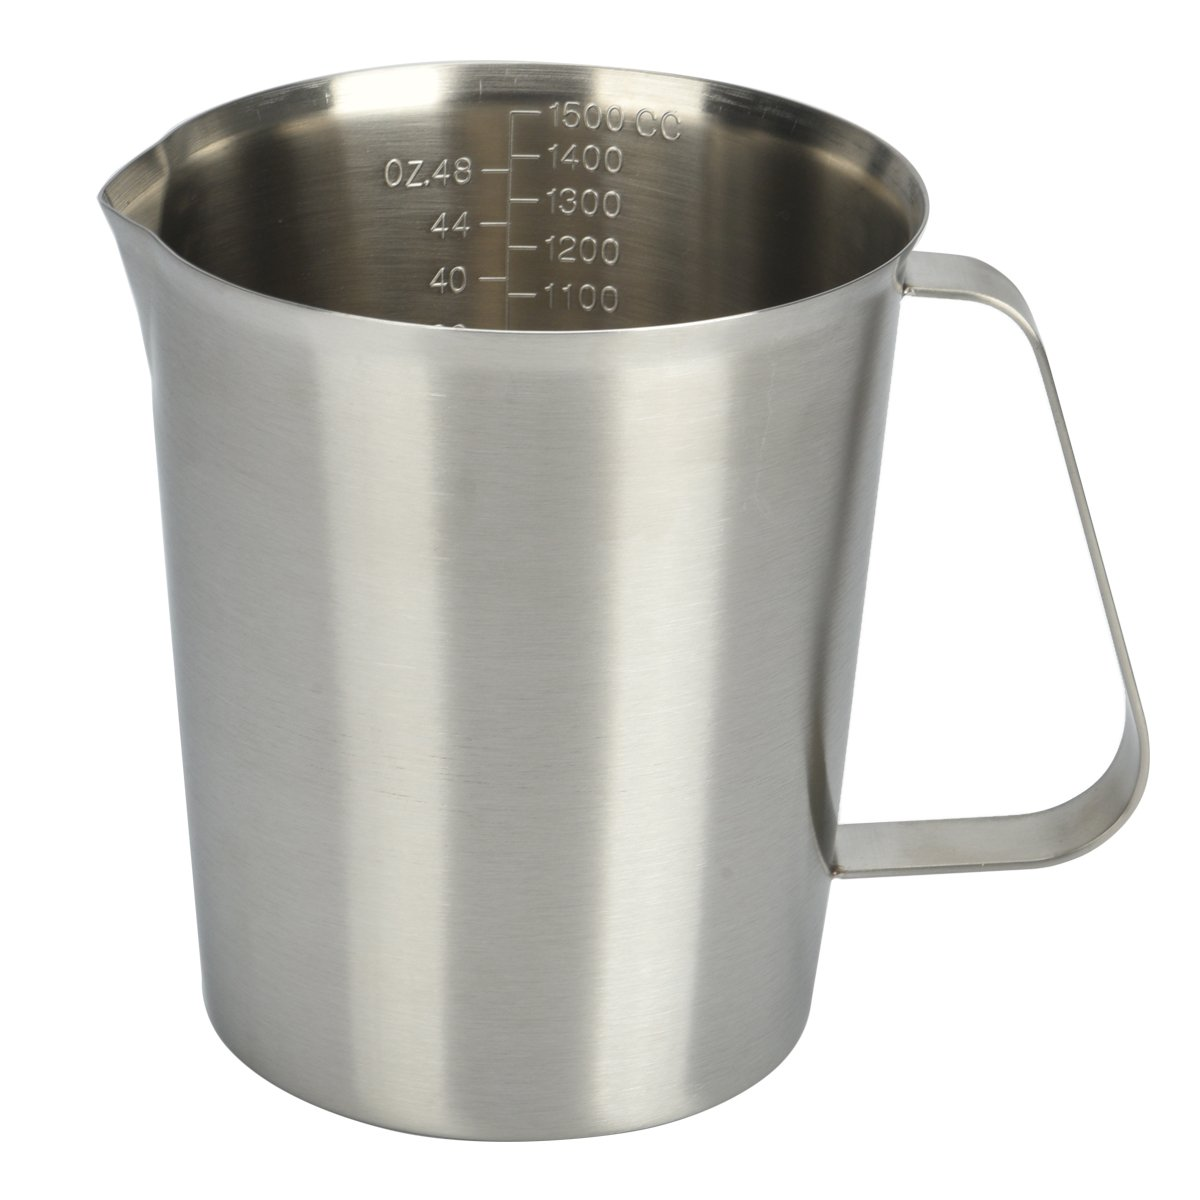 Stainless Steel Liquid Measuring Cup for Kitchen Large Measurement Cups Aslo Use as Frothing Pitcher Measuring Cup (48 Ounce)